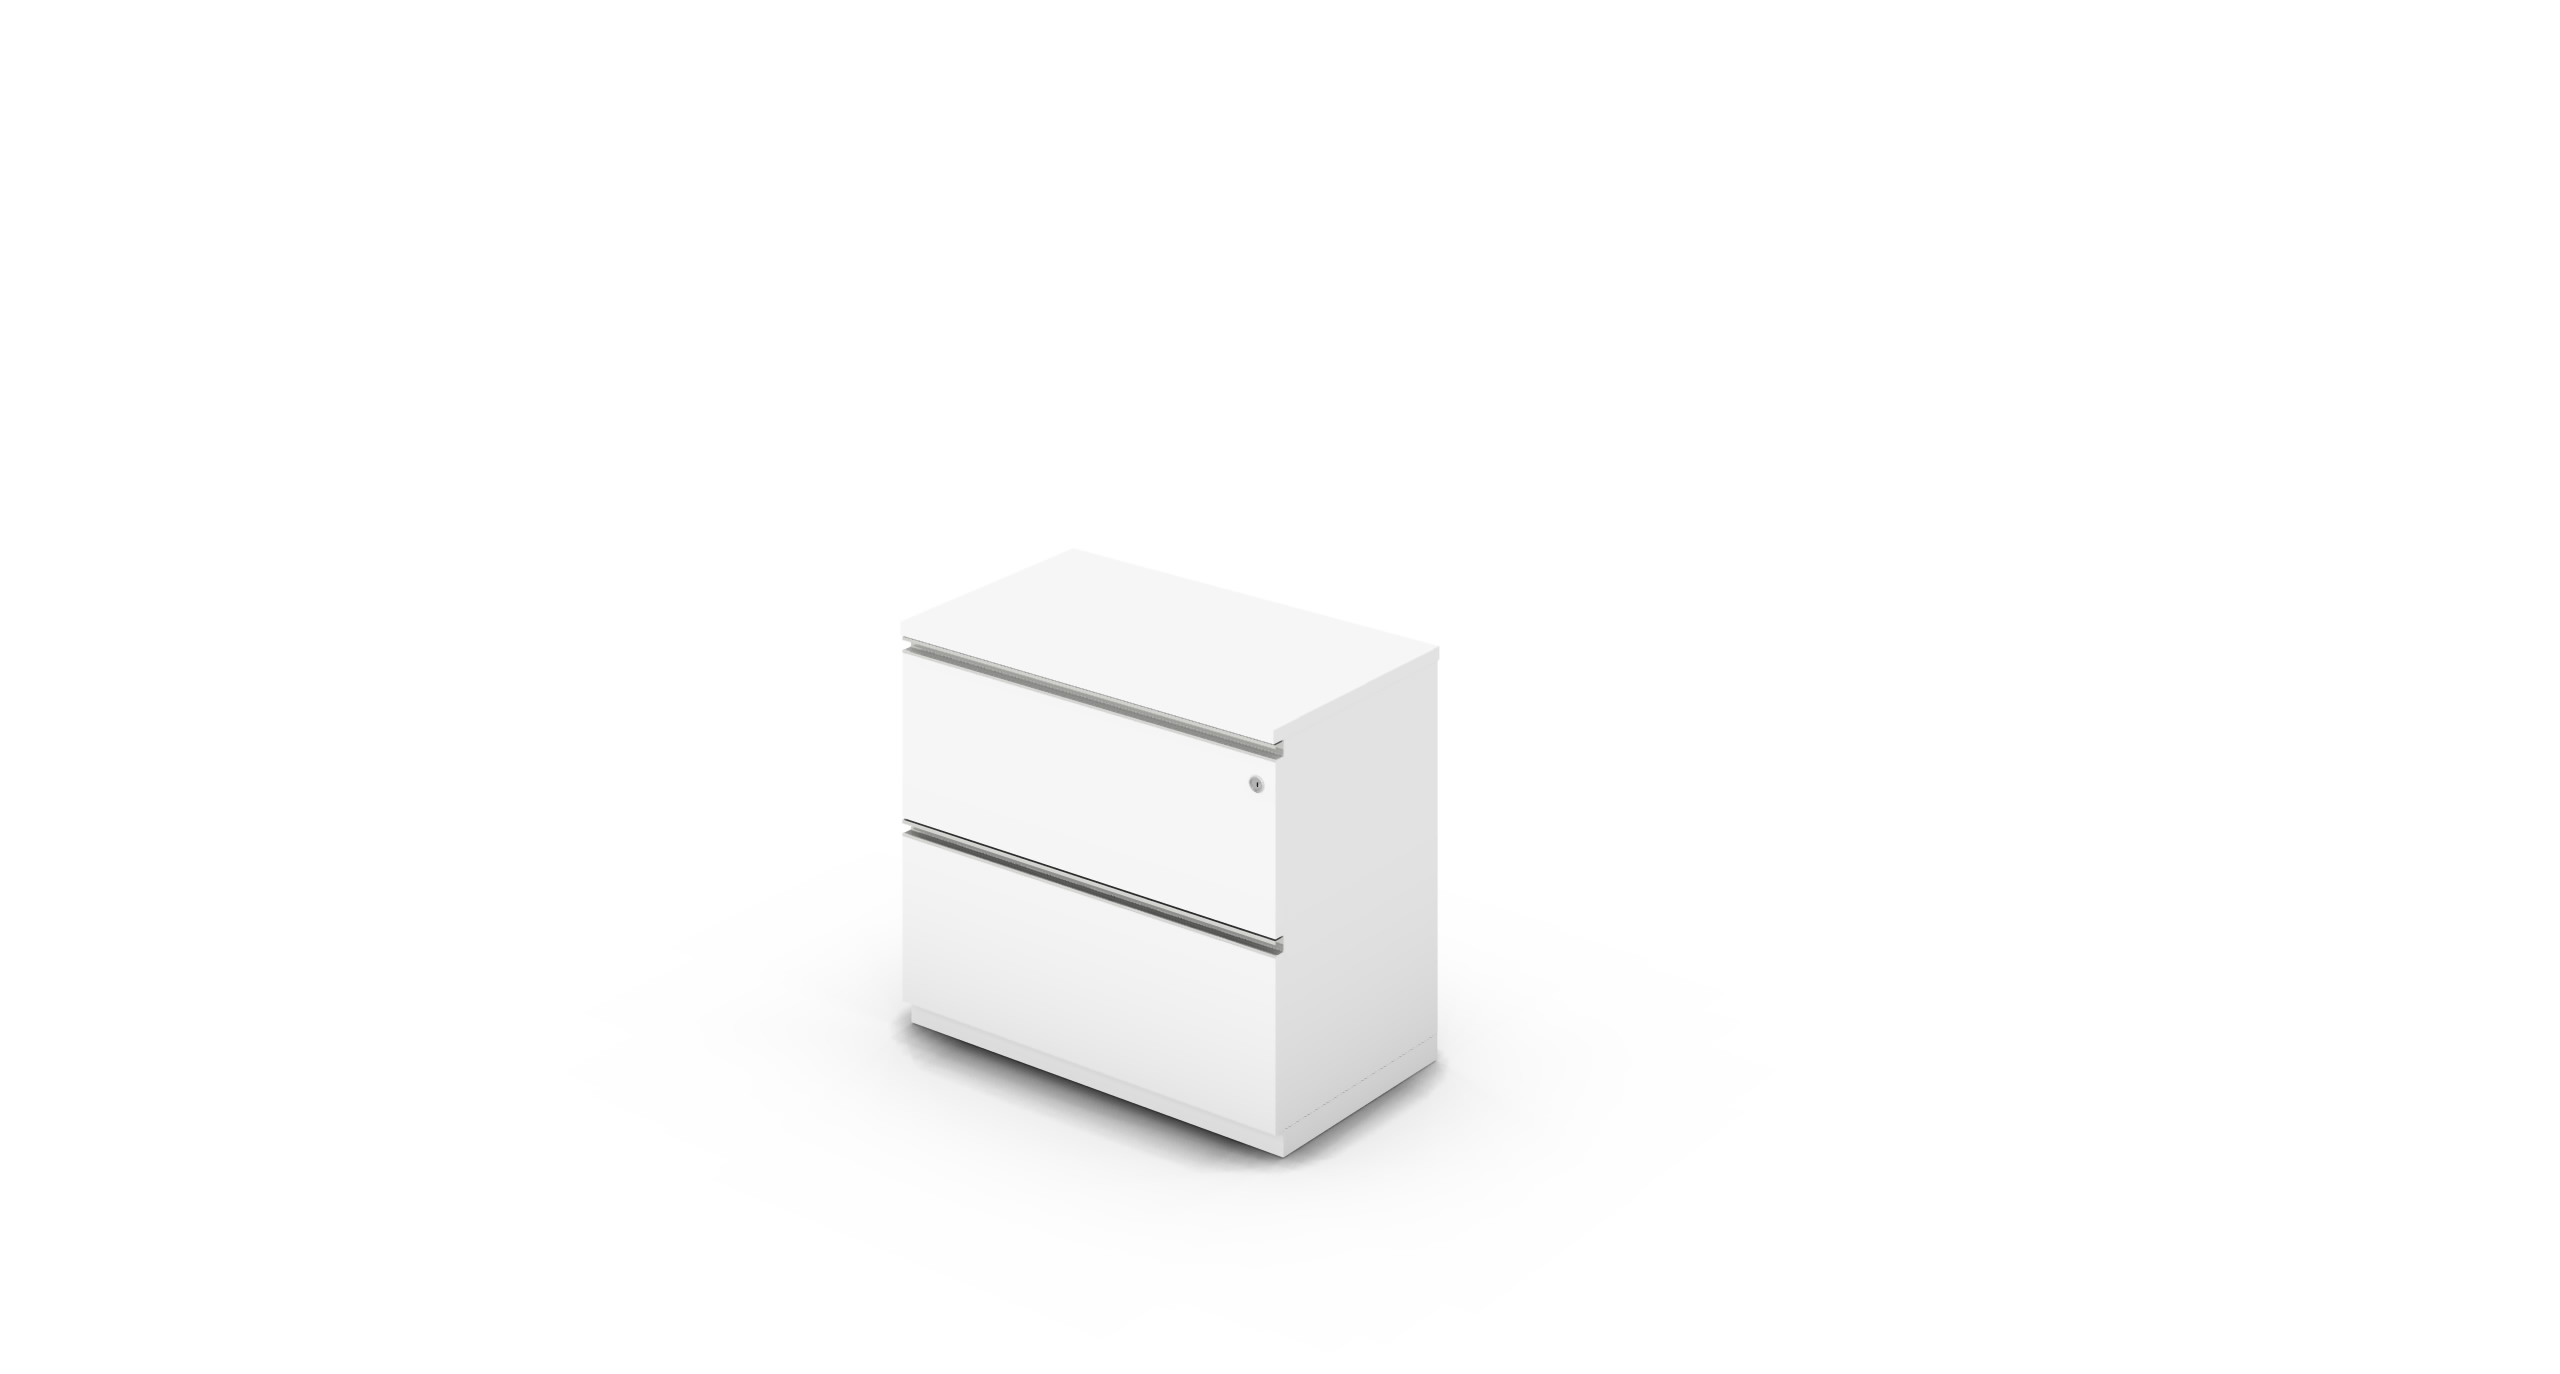 Cabinet_800x450x775_DR_White_Rail_WithCylinder